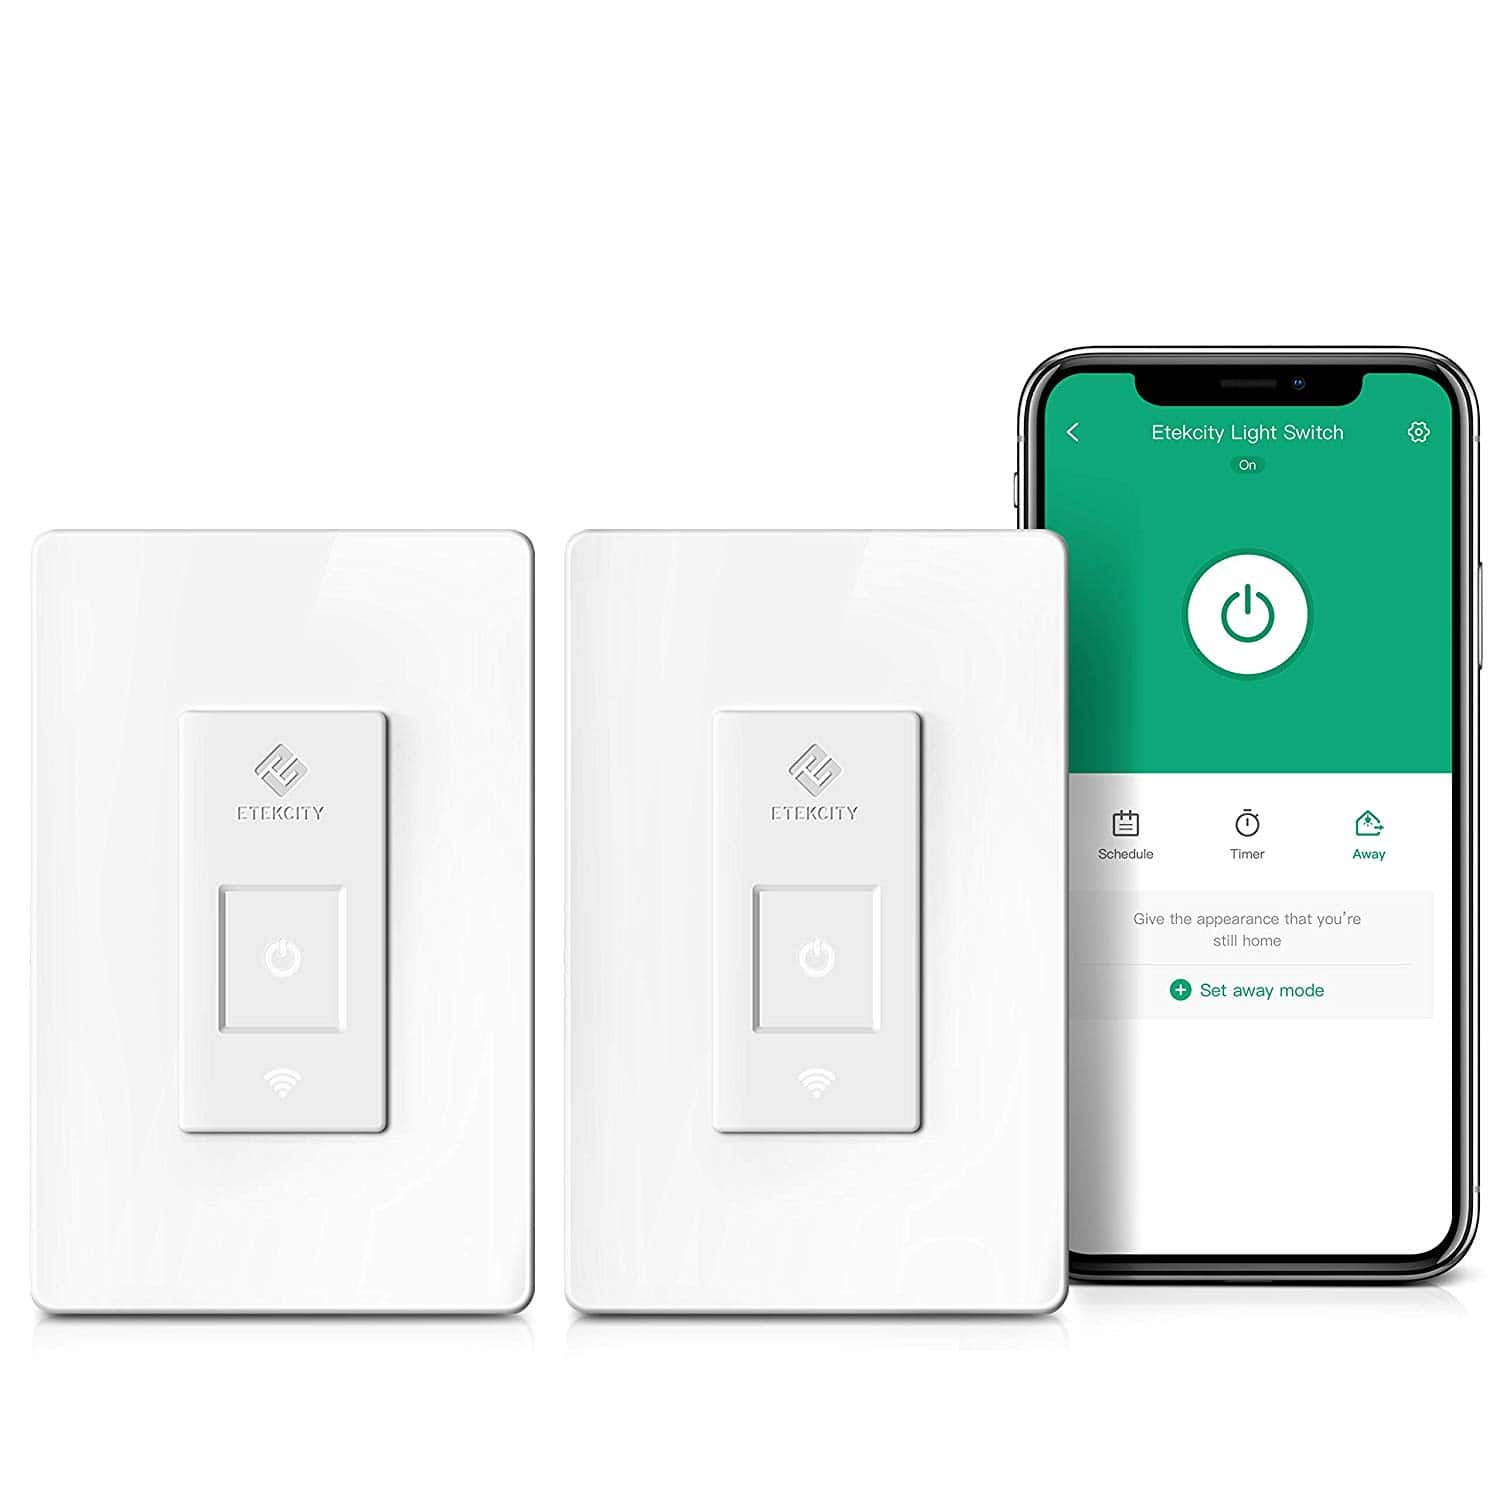 2-Pack Etekcity Smart WiFi Remote Control No Hub Required Light Switch with Timer (Works with Alexa & Google Home) +Free Shipping $25.98